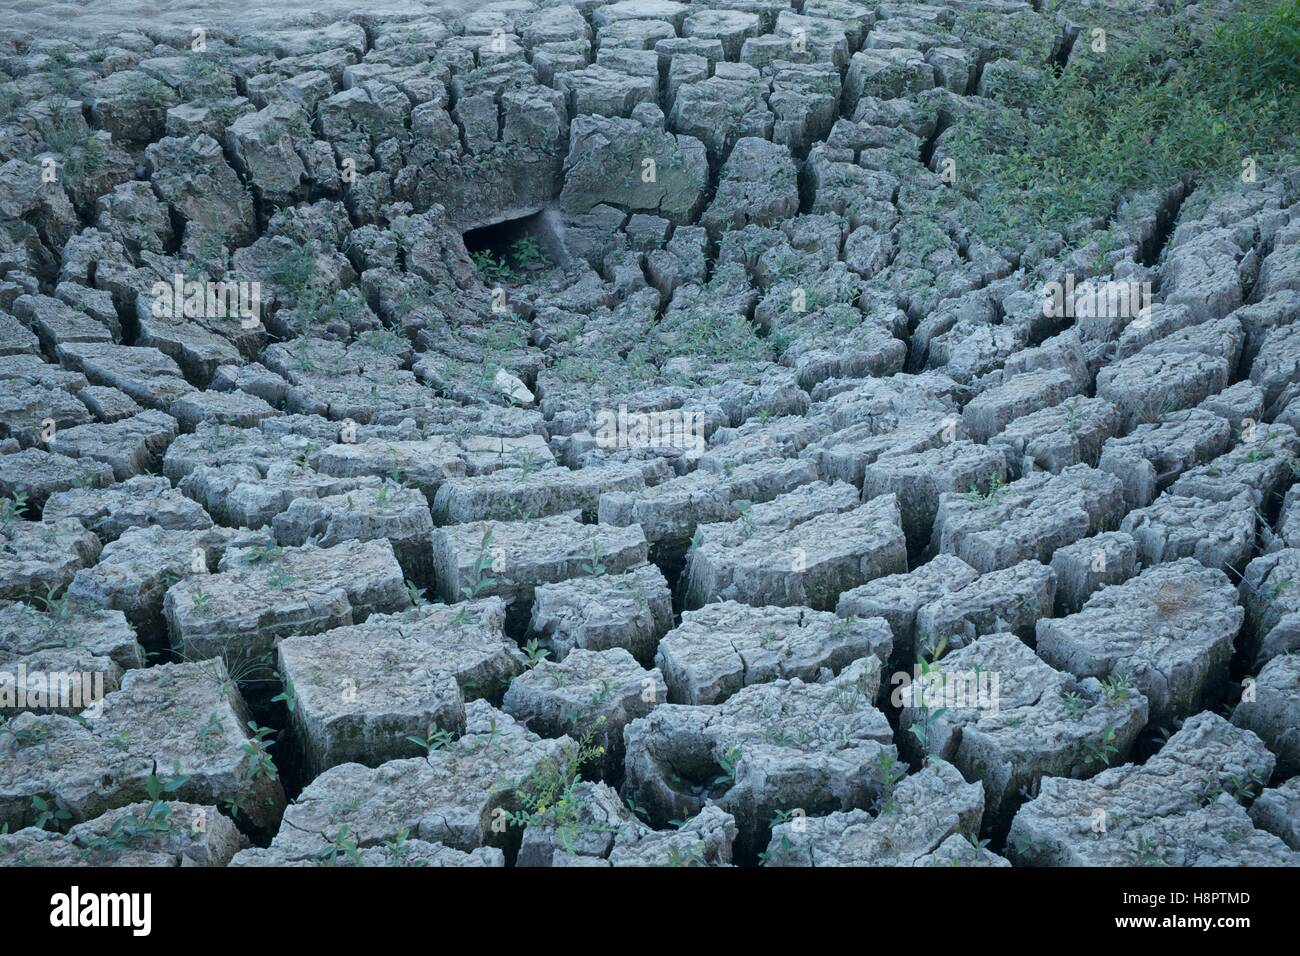 Parched cracked lake bed, Guerledan, France - Stock Image